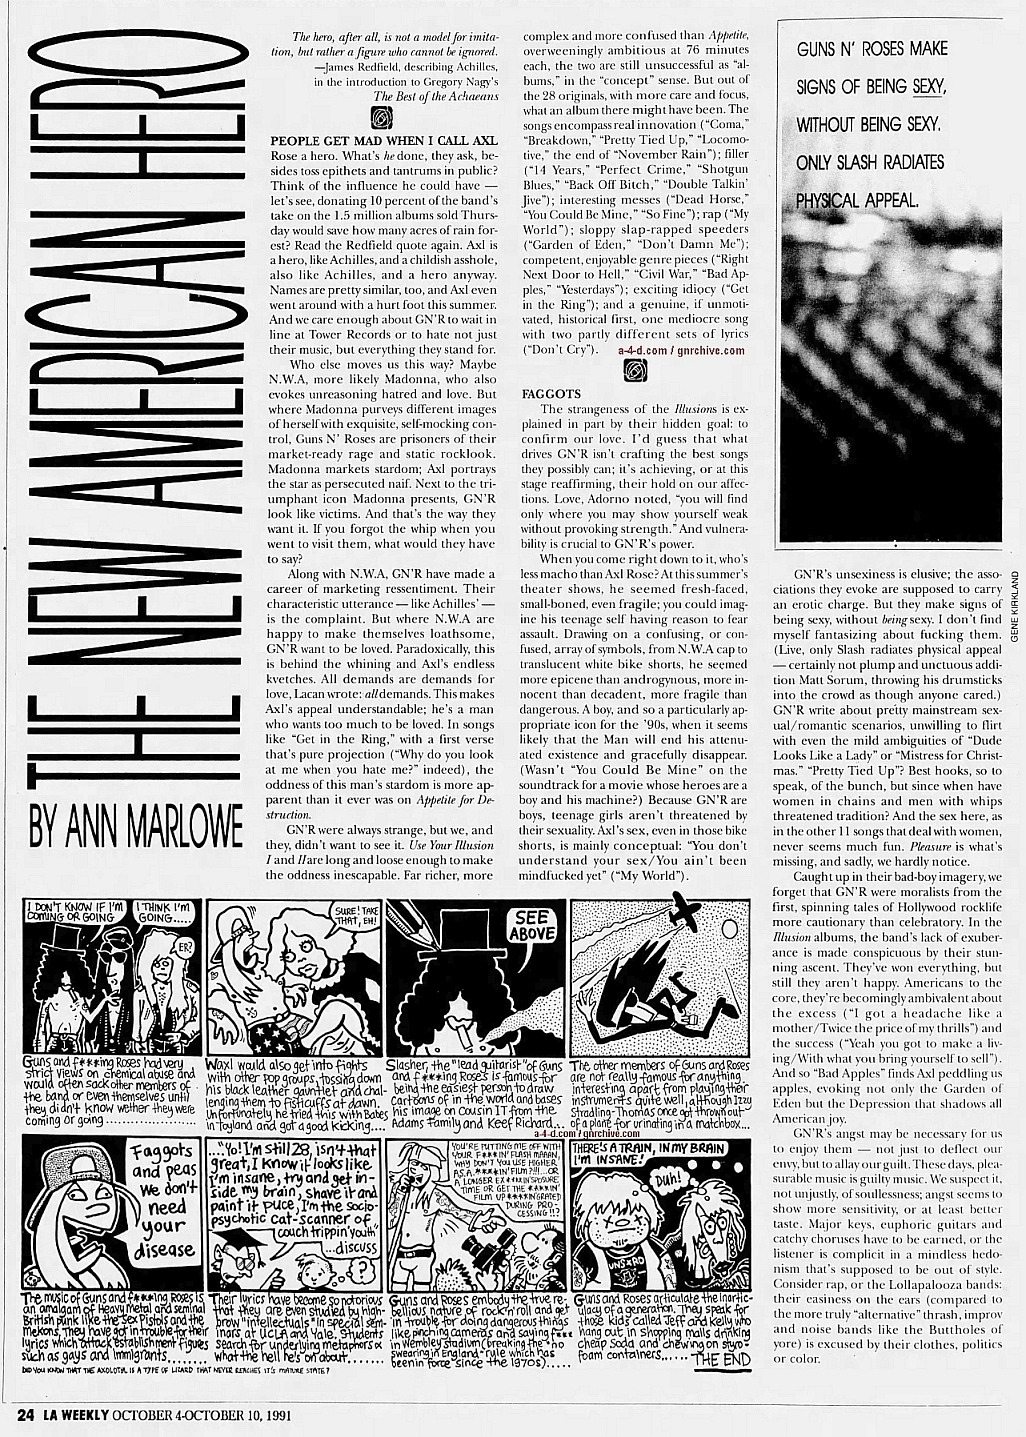 1991.10.04 - L.A. Weekly - Guns N' Roses: Up From Nowhere 1991_119